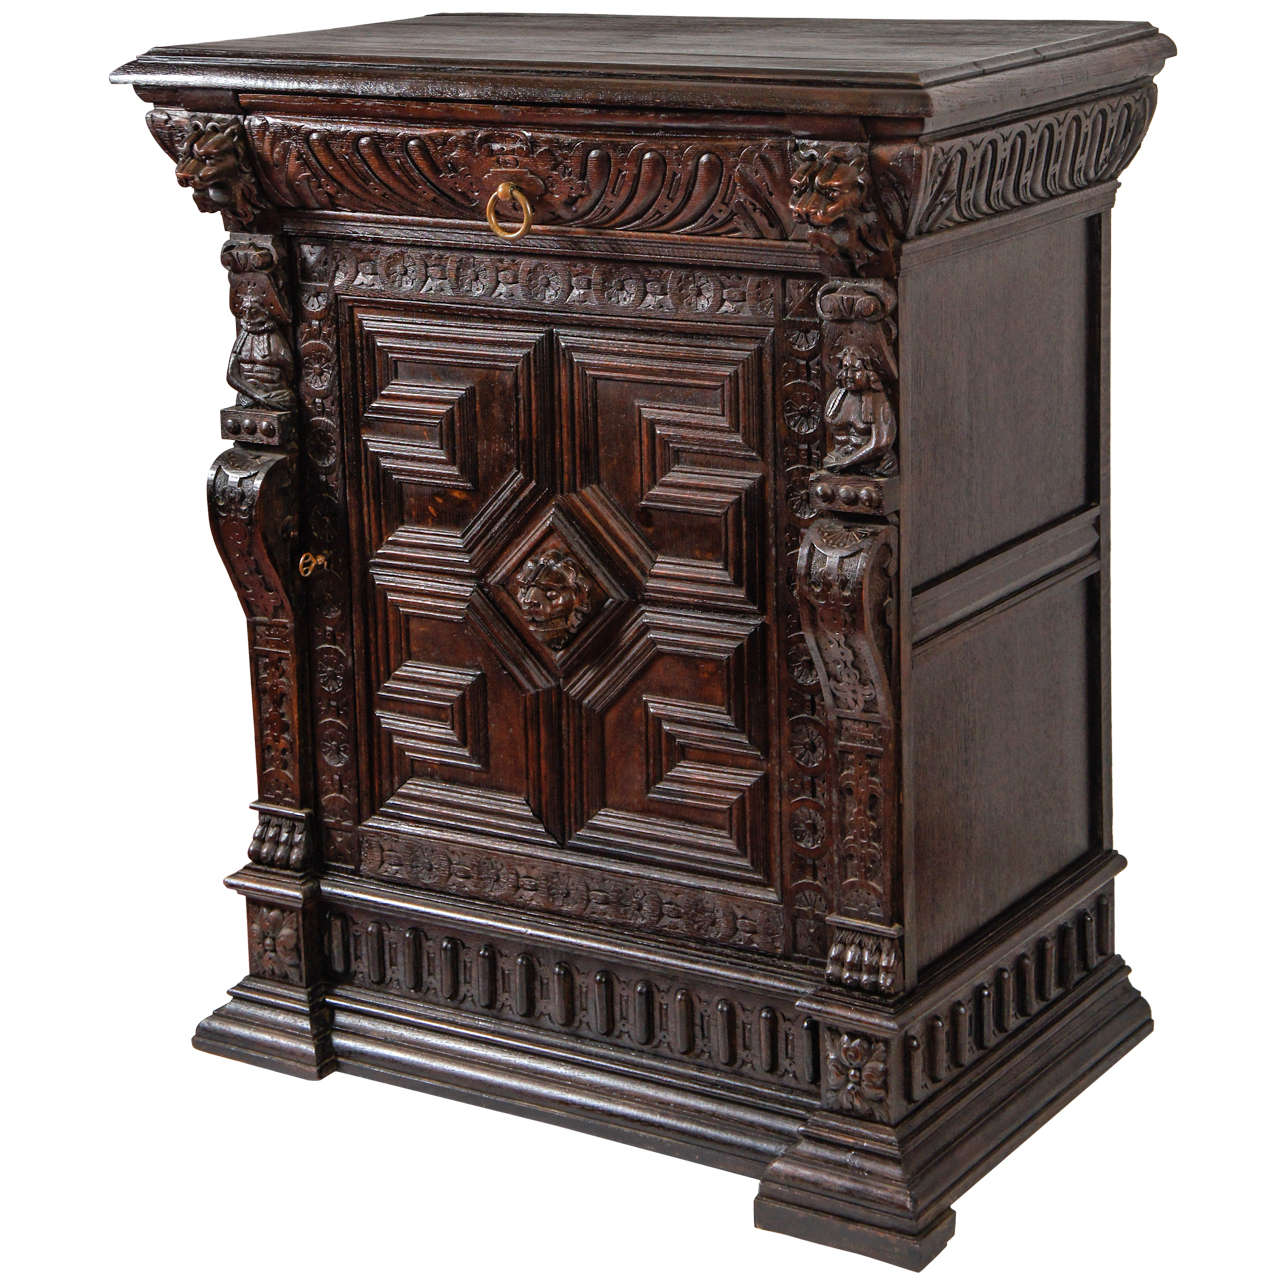 Antique Hand-Carved Oak Cabinet For Sale - Antique Hand-Carved Oak Cabinet For Sale At 1stdibs